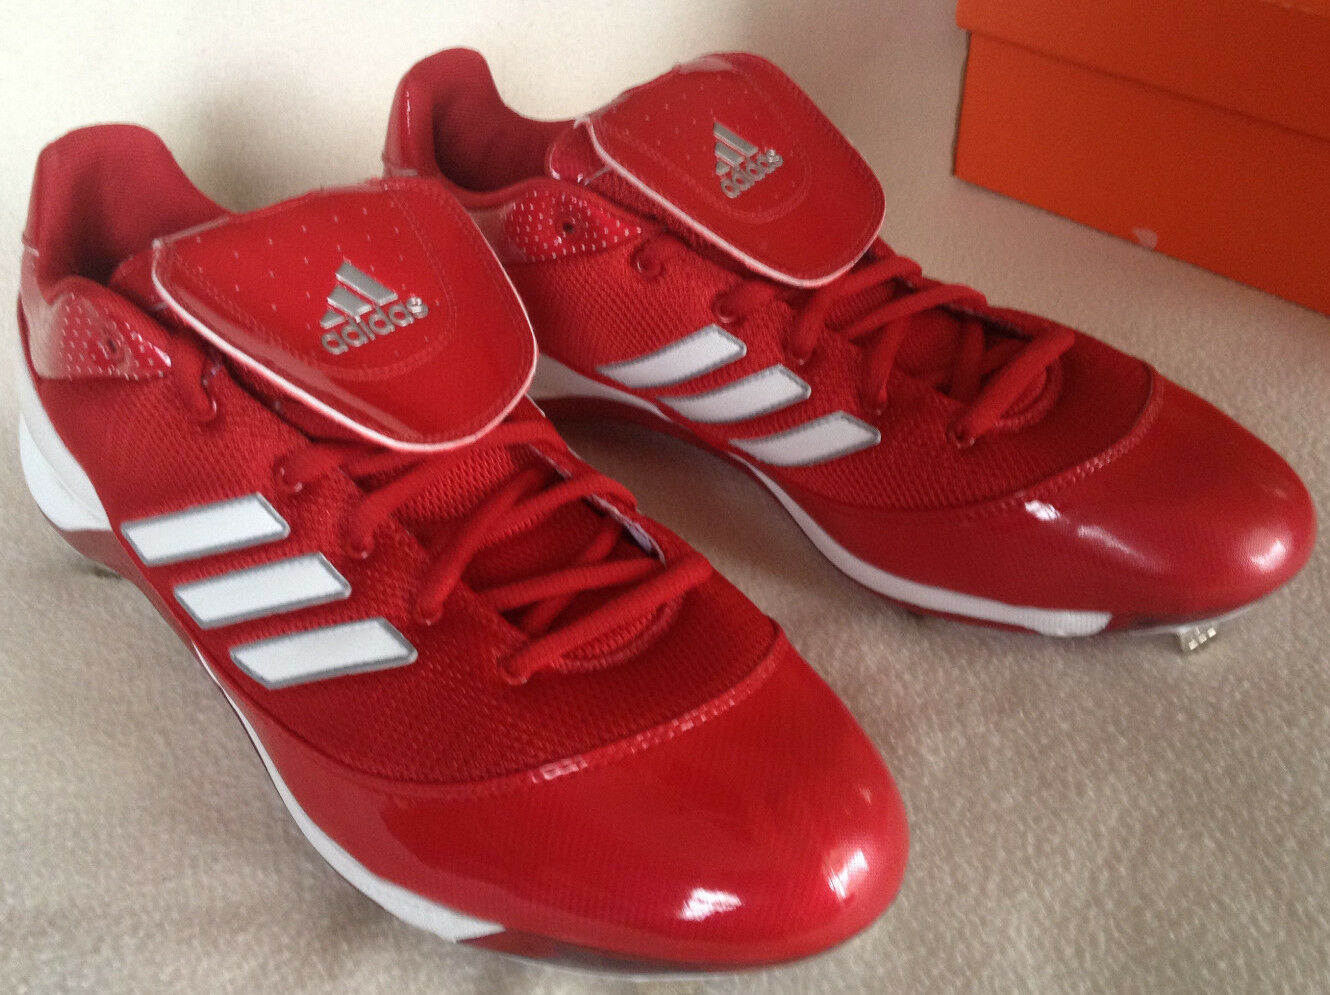 Adidas AS SMU Excel 365 Ex G56590 Red Baseball Metal Cleats shoes Men's 14 new